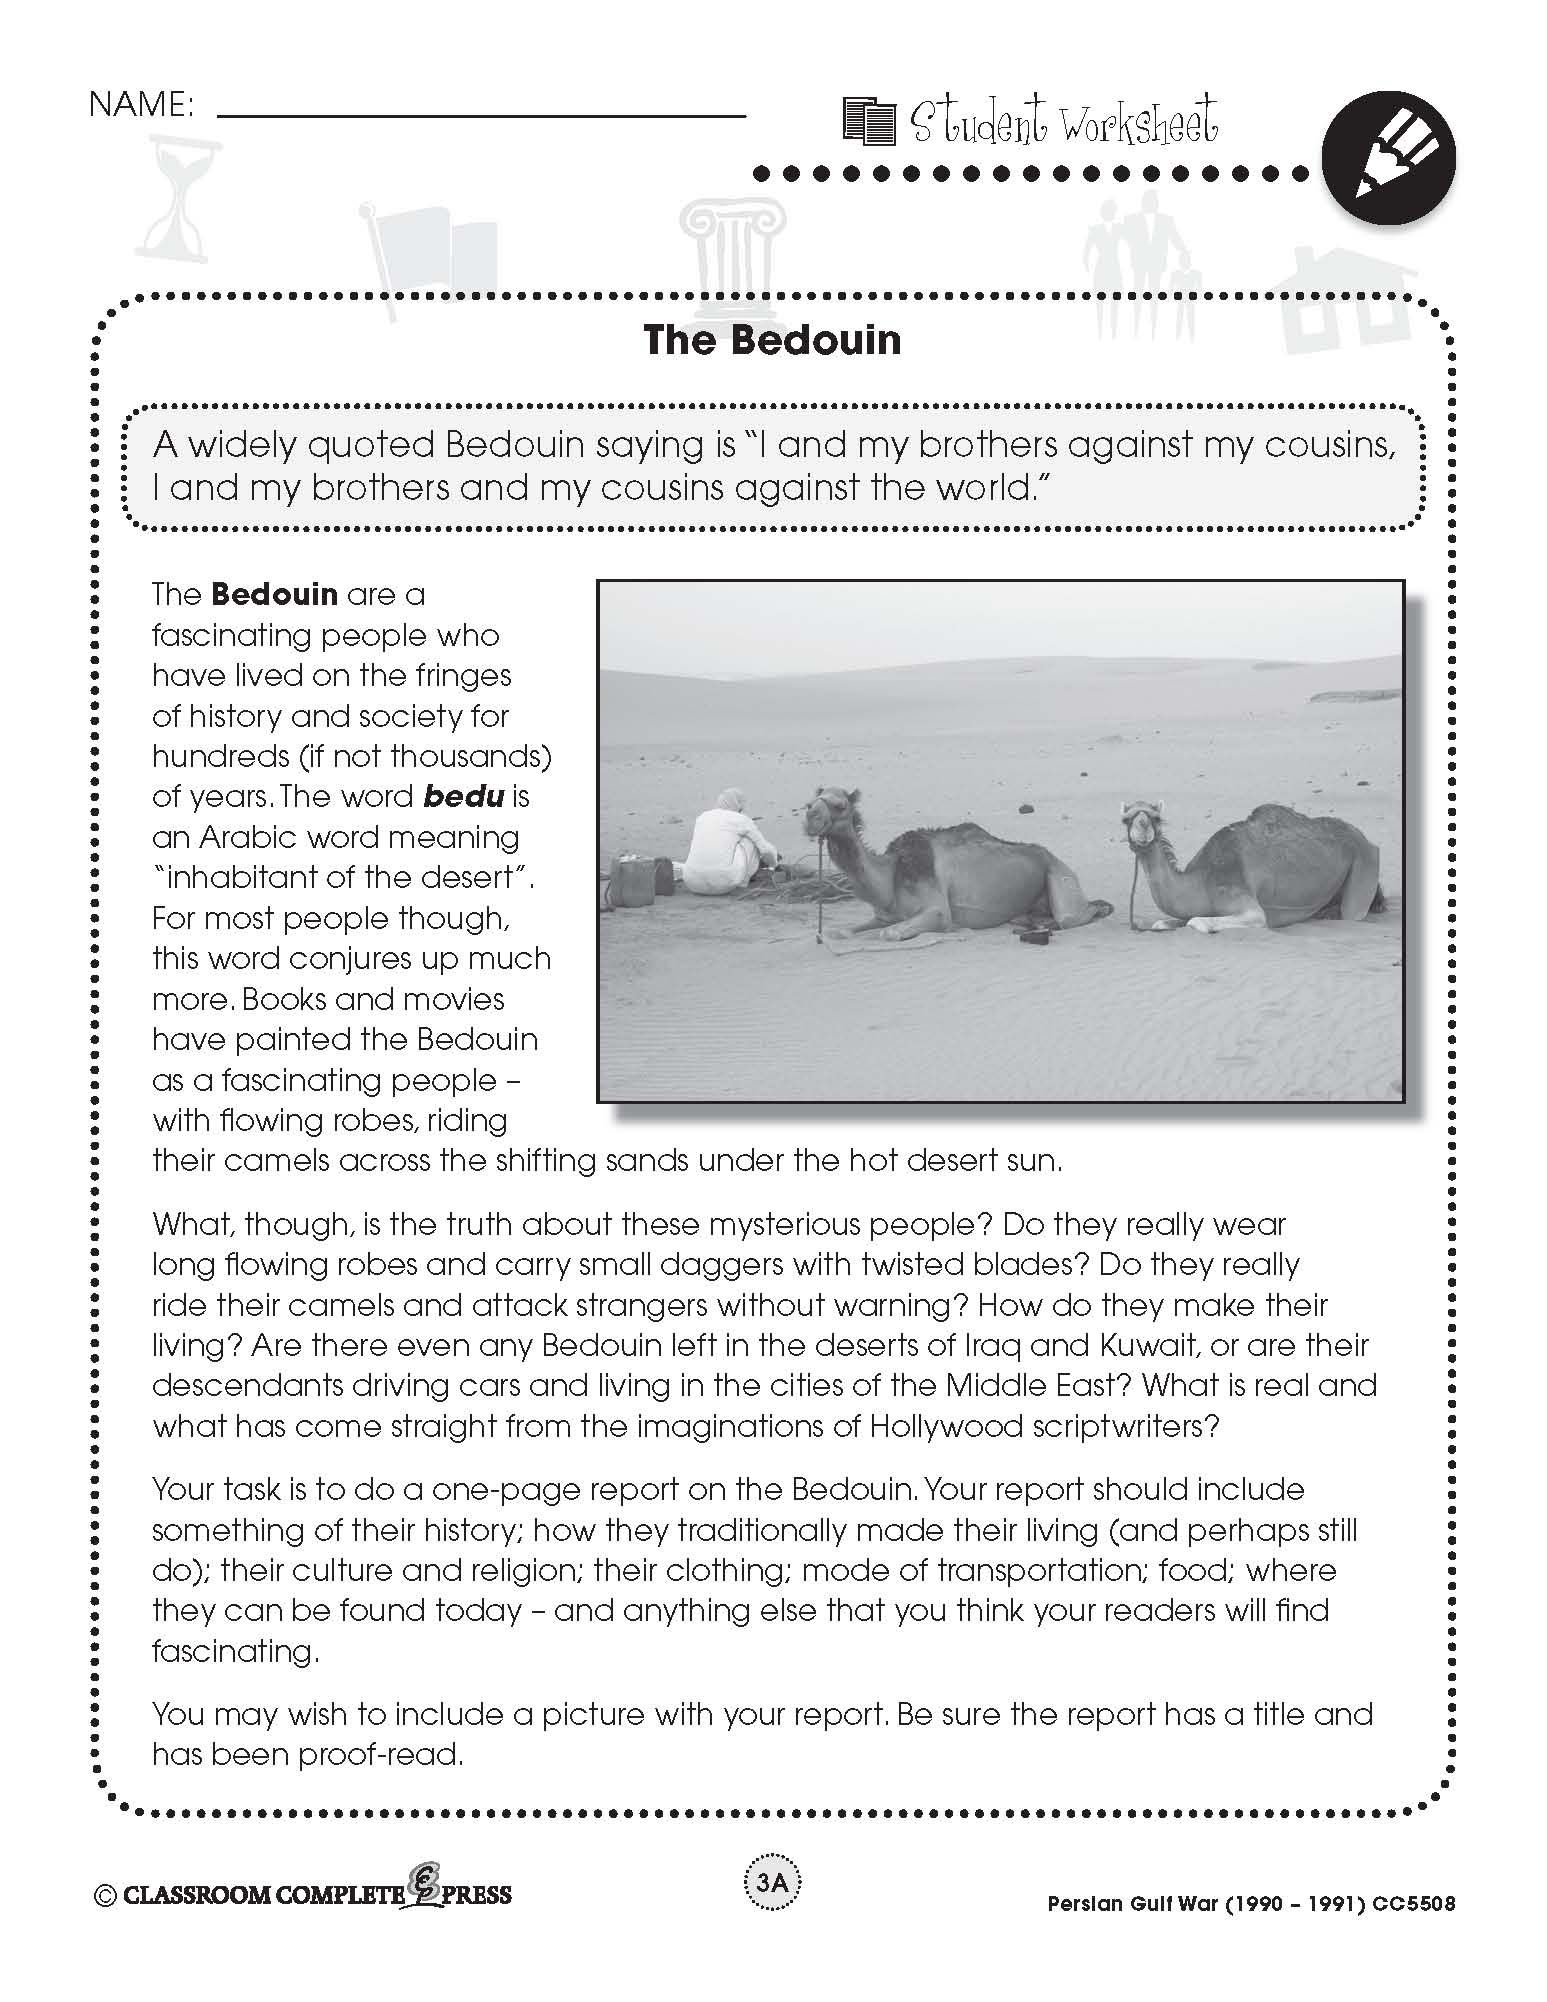 Write A Report On The Bedouin People From The Persian Gulf